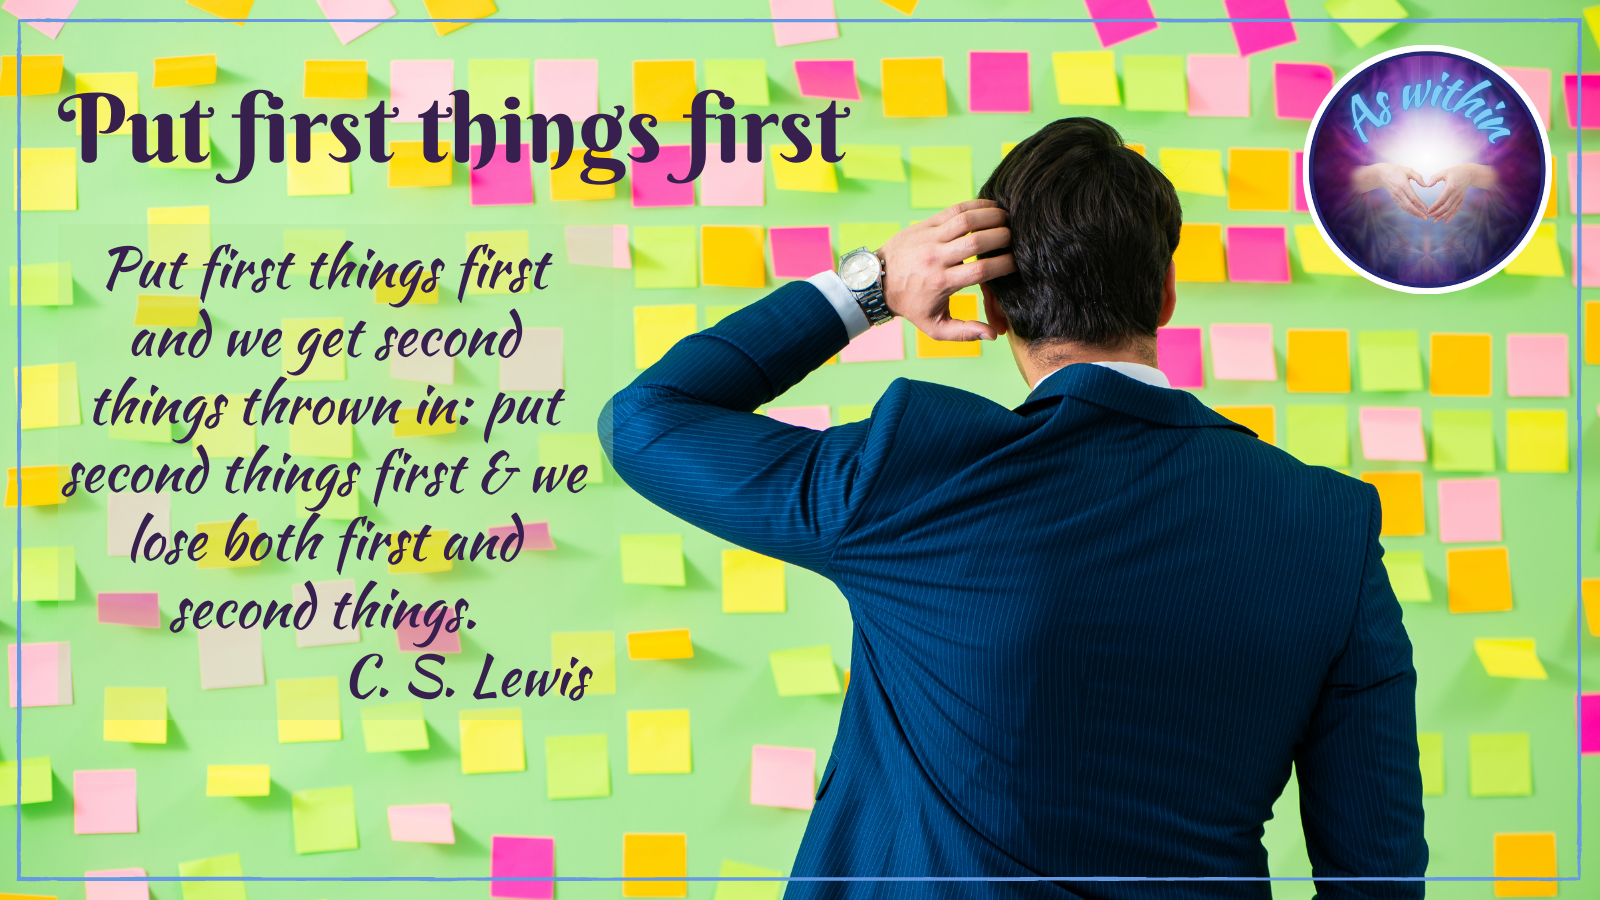 Put first things first and we get second things thrown in: put second things first & we lose both first and second things, C. S. Lewis, priorities, values, what is important